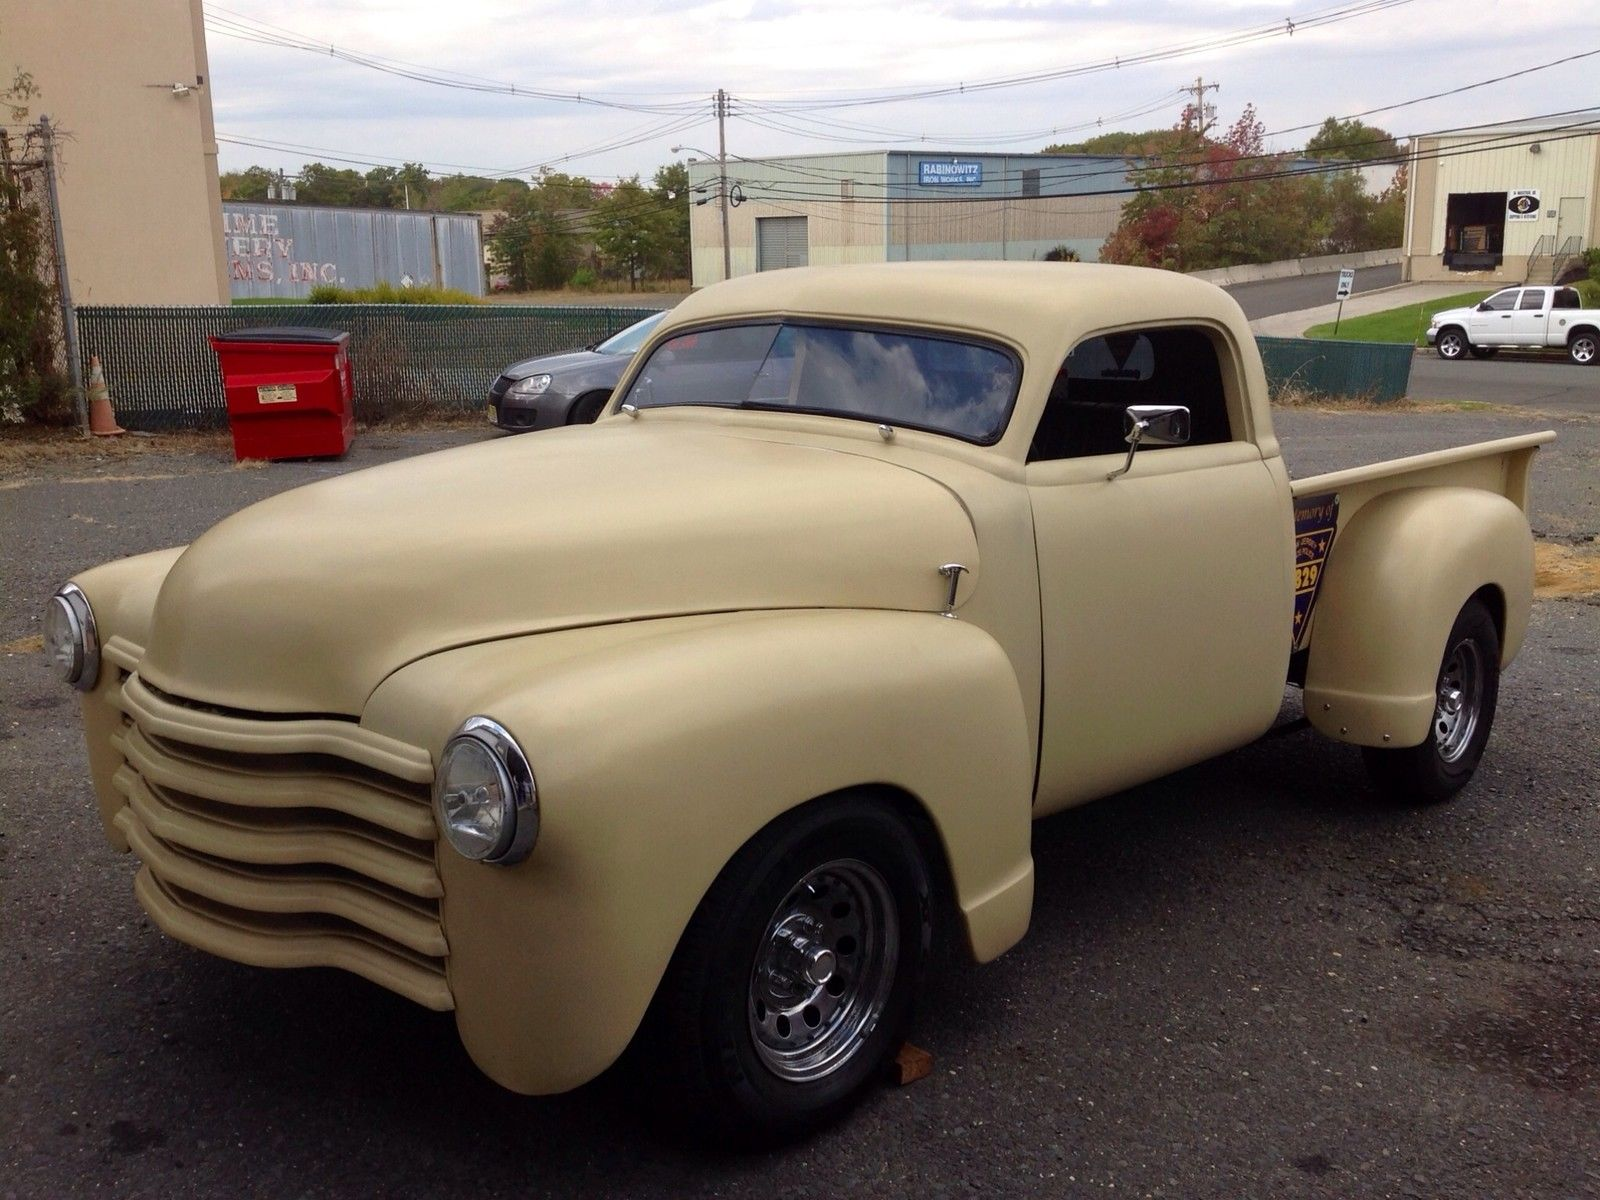 Multilinkirs furthermore 94637 1959 Chevy Apache Fleetside Truck Chevrolet Pickup Ratrod Patina Hotrod Airbags additionally Suspension moreover 2018 Kia Pickup Re Badged Hyundai Santa Cruz in addition 1955 FORD F 100 CUSTOM PICKUP 116369. on rear independent suspension pickup trucks